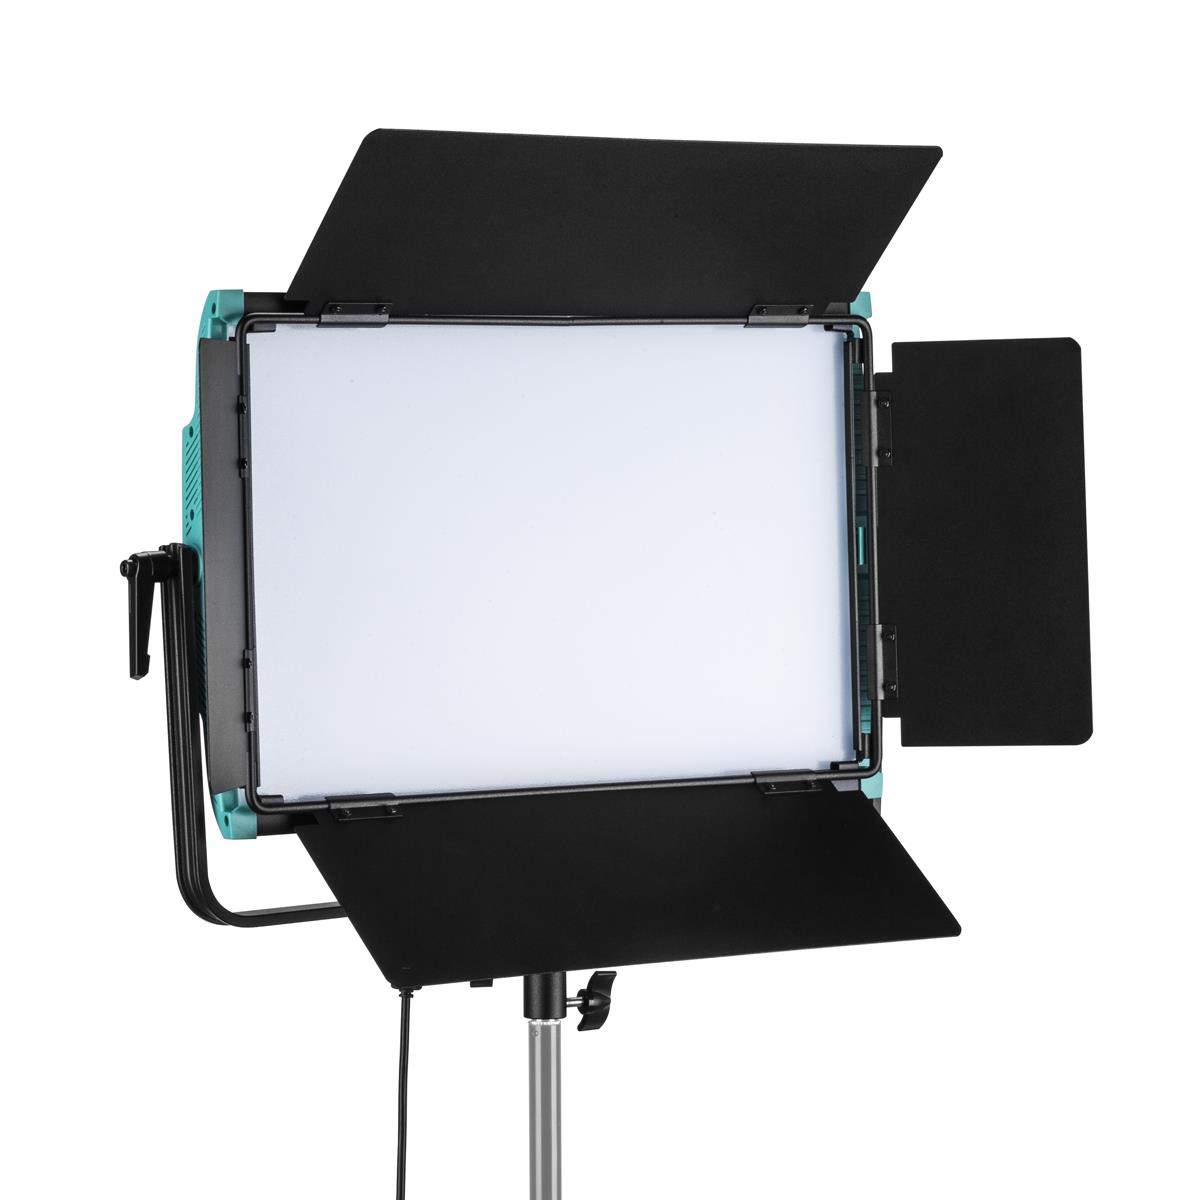 Best Photography Lighting Equipment CLAR Maxin MX B15 1 image